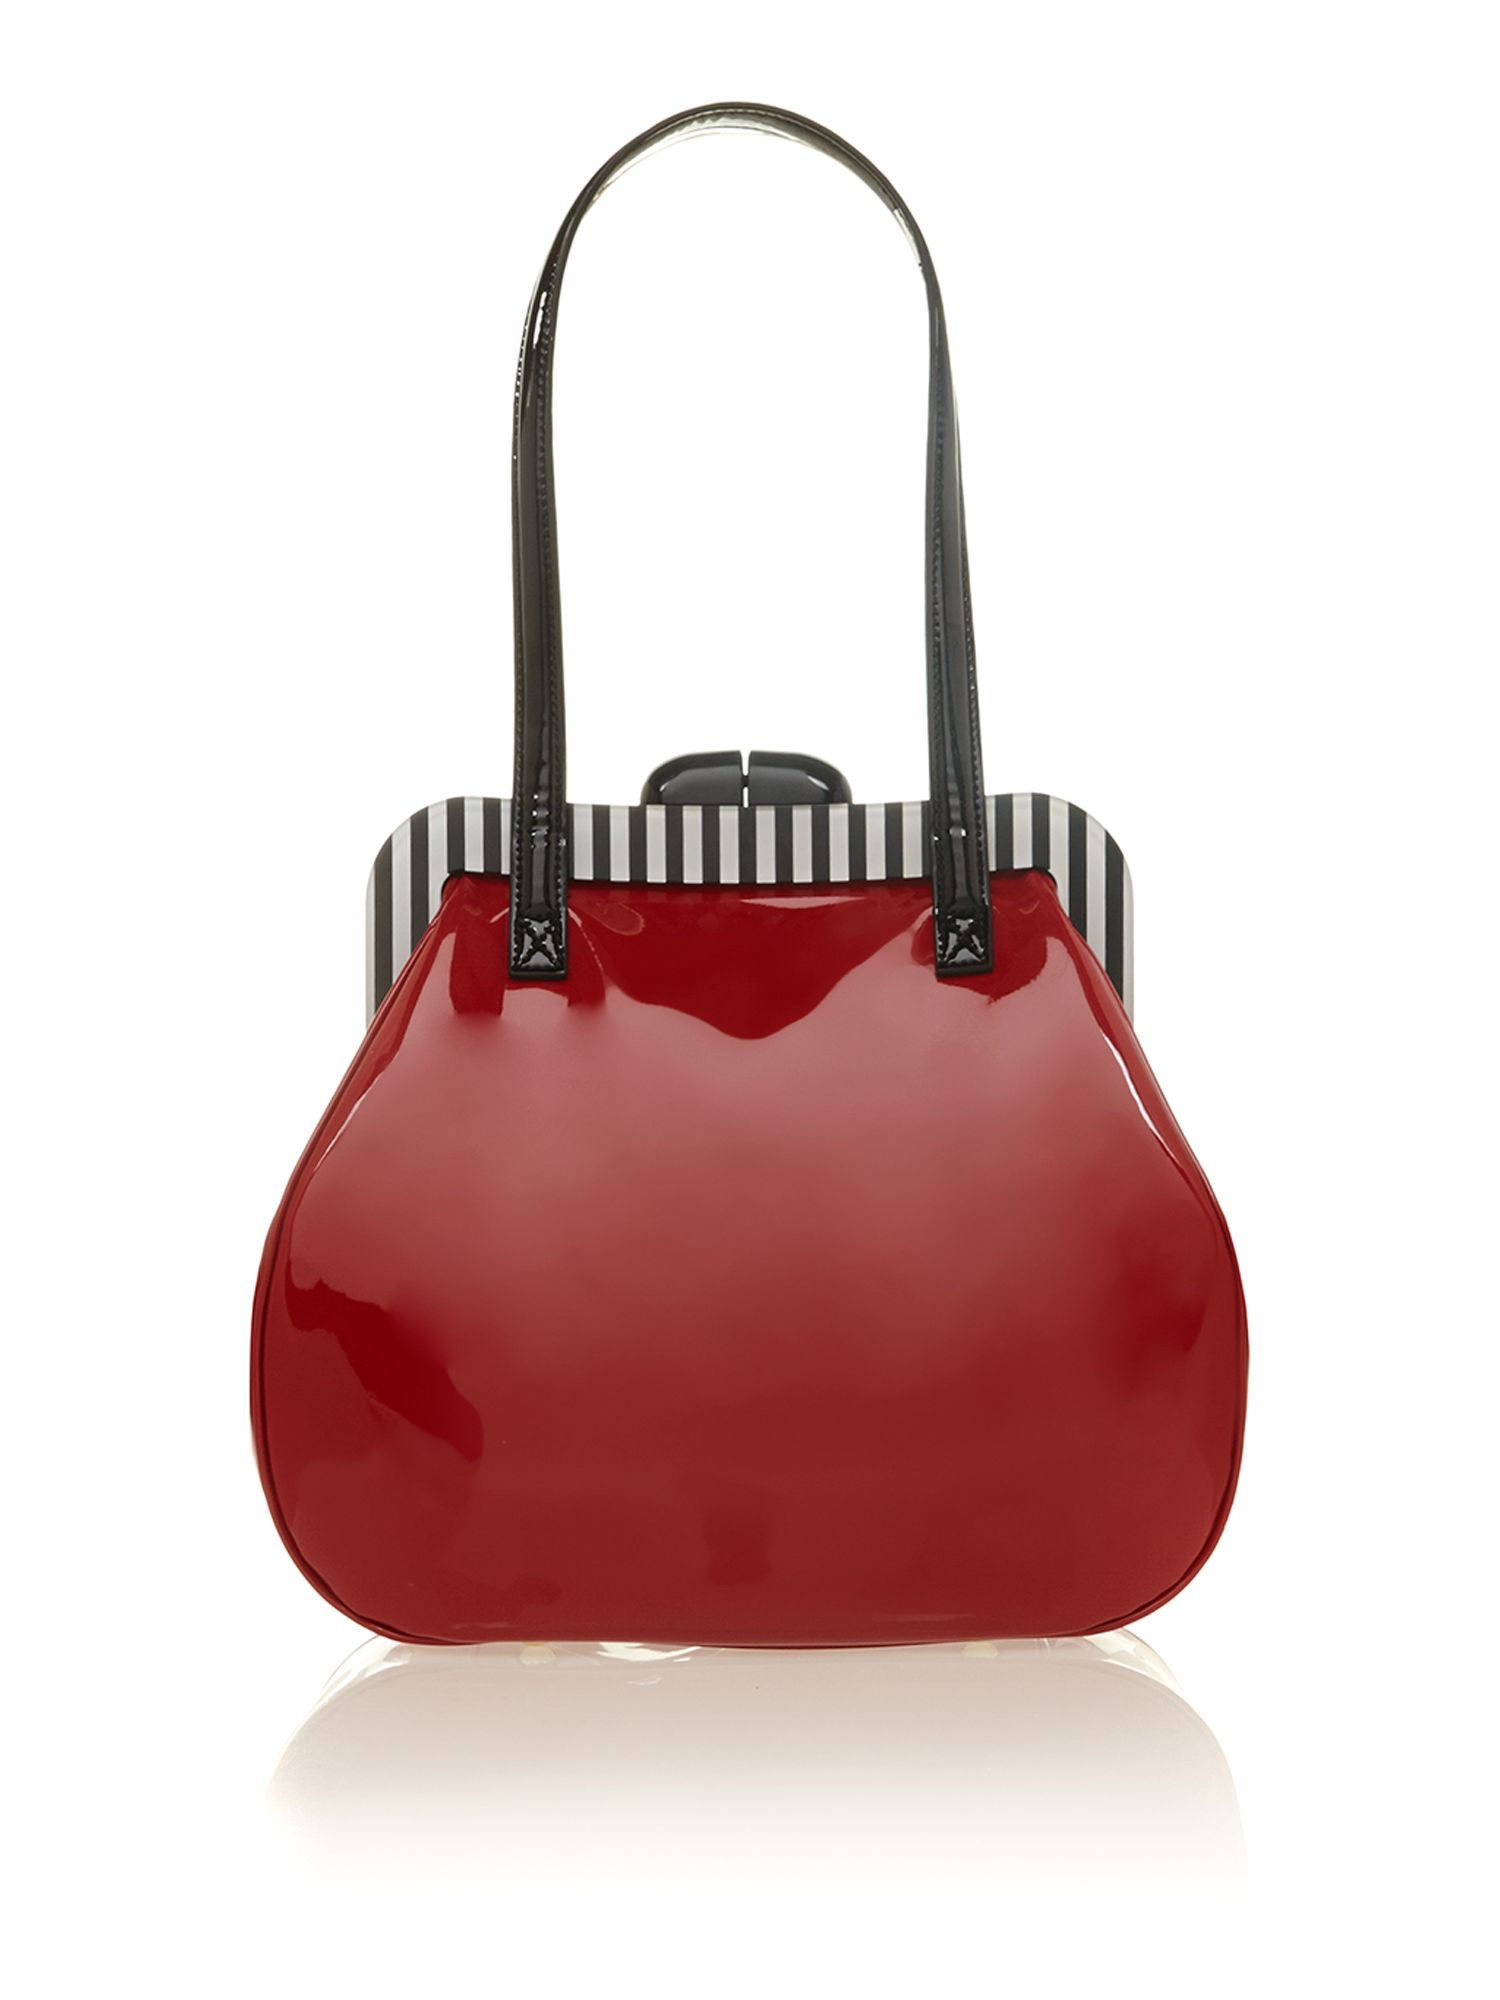 Pollyanna red patent shoulder bag